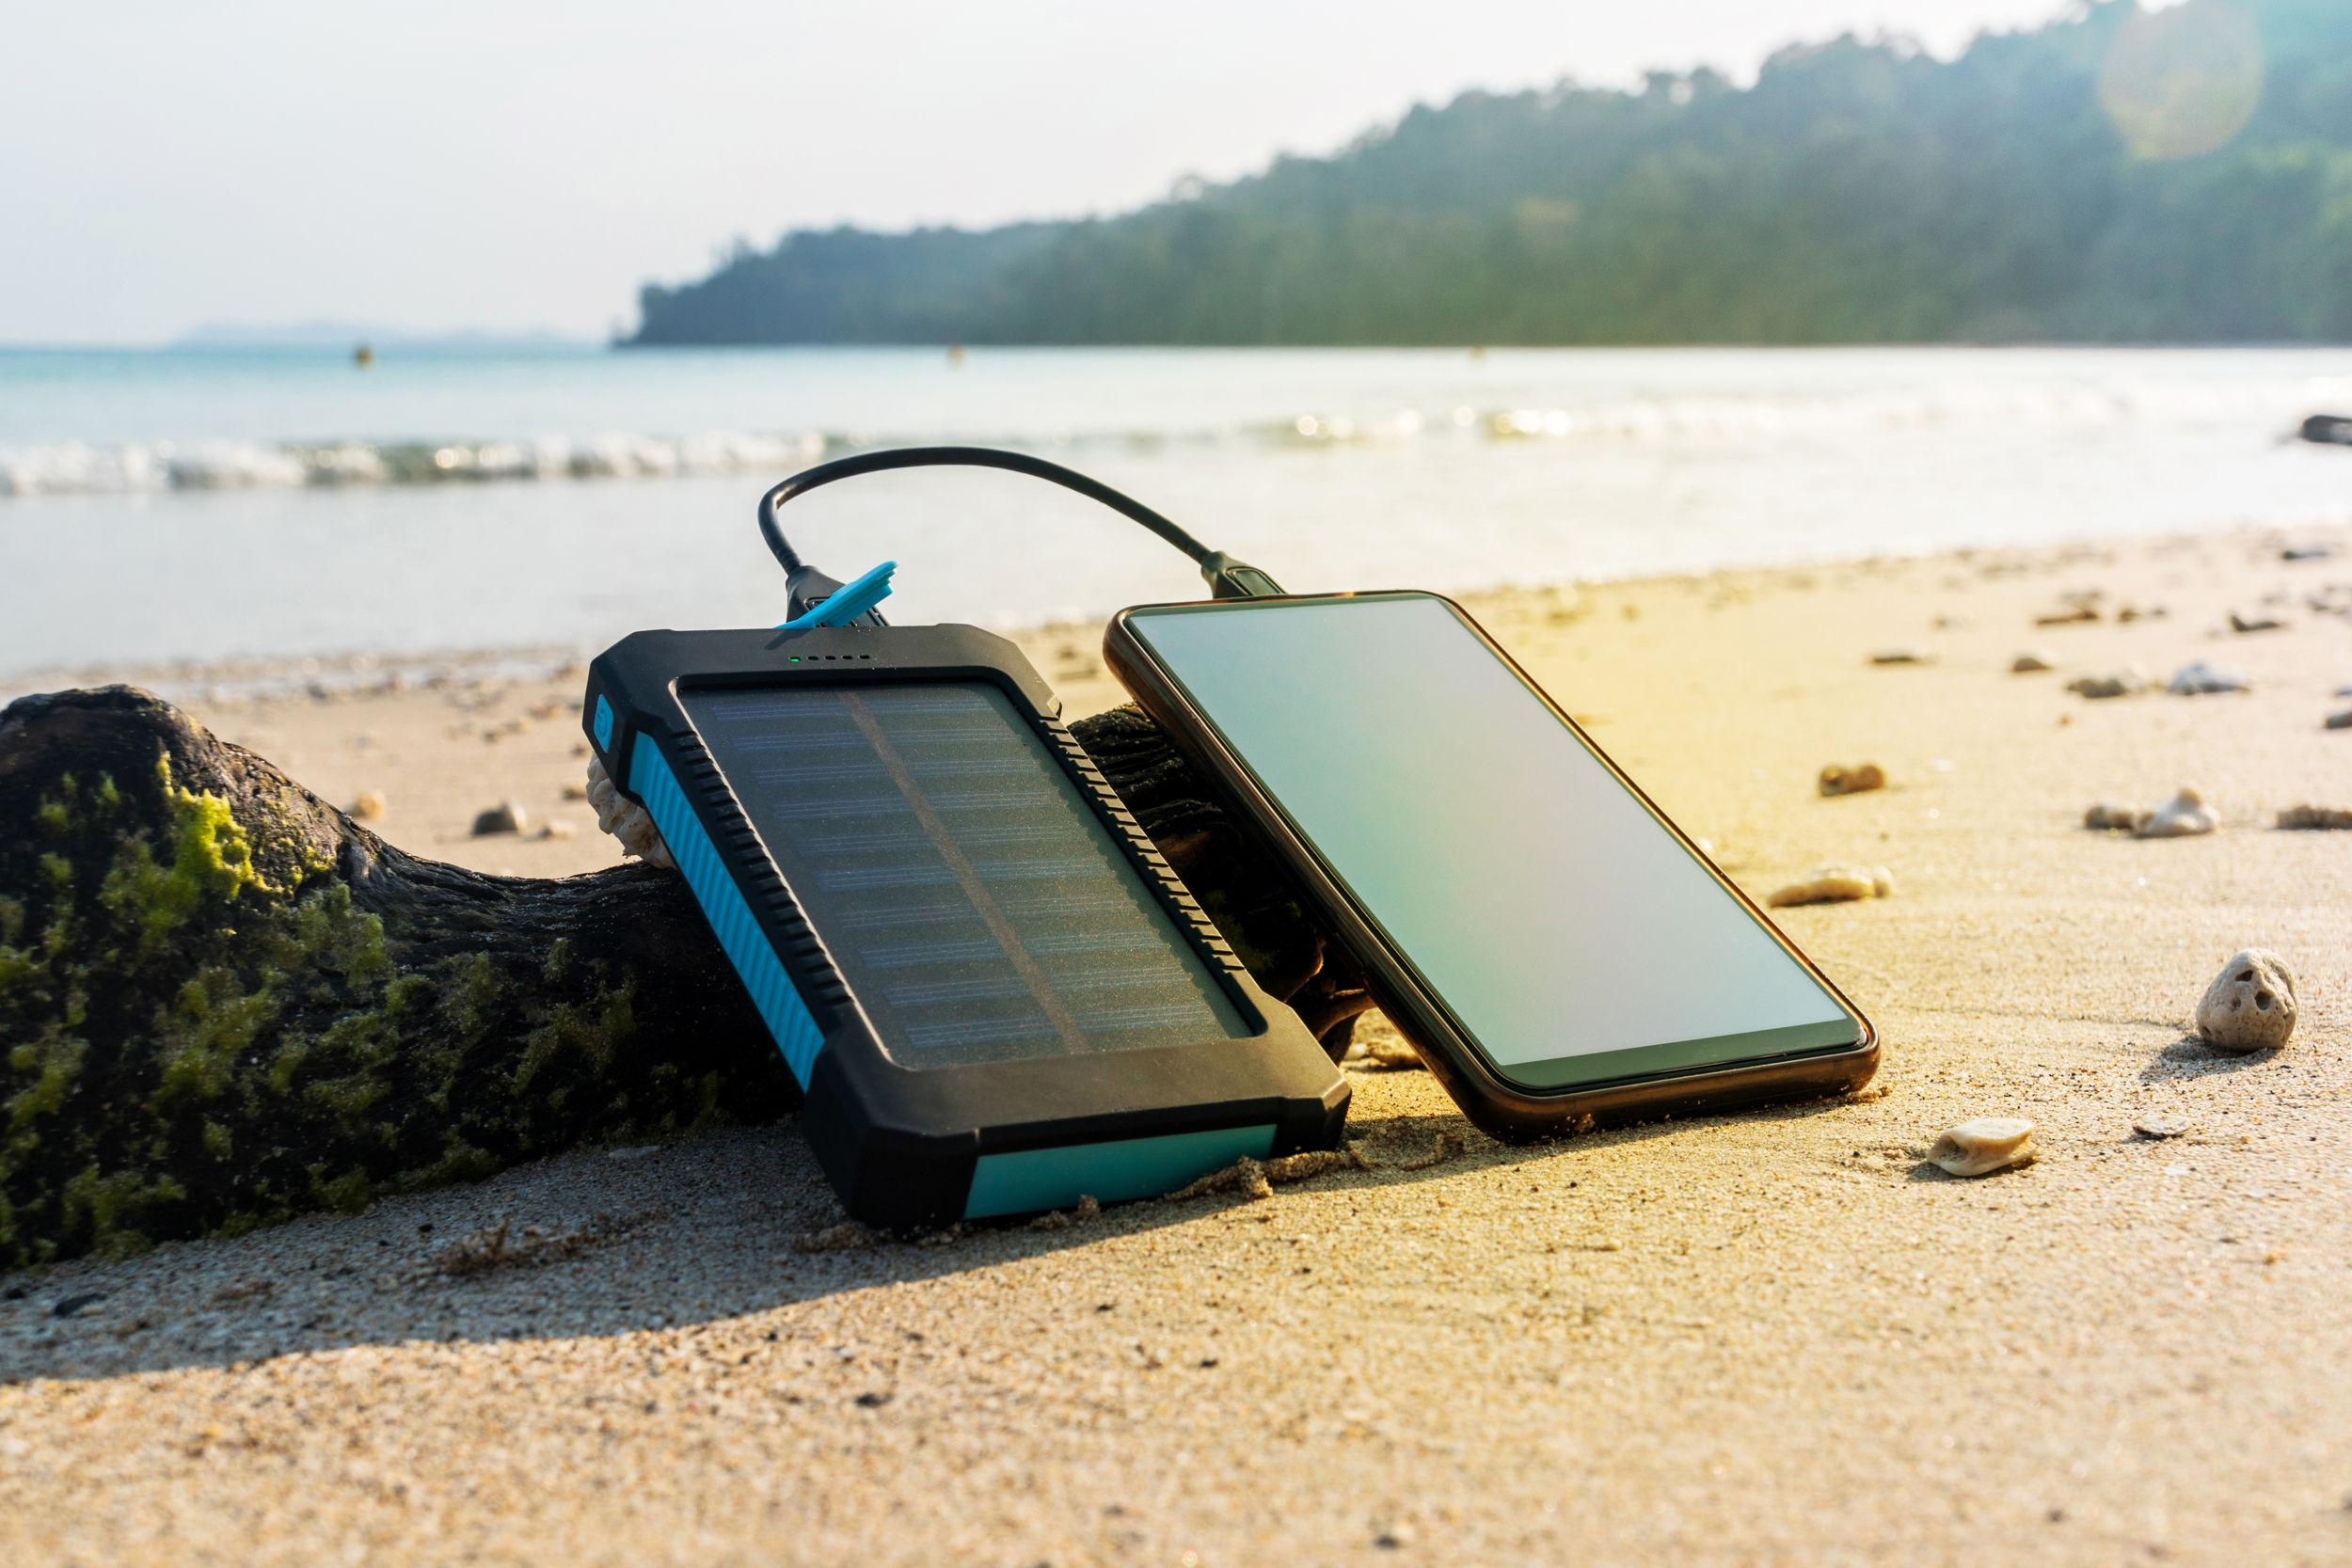 Canva - Portable solar panel is on the beach